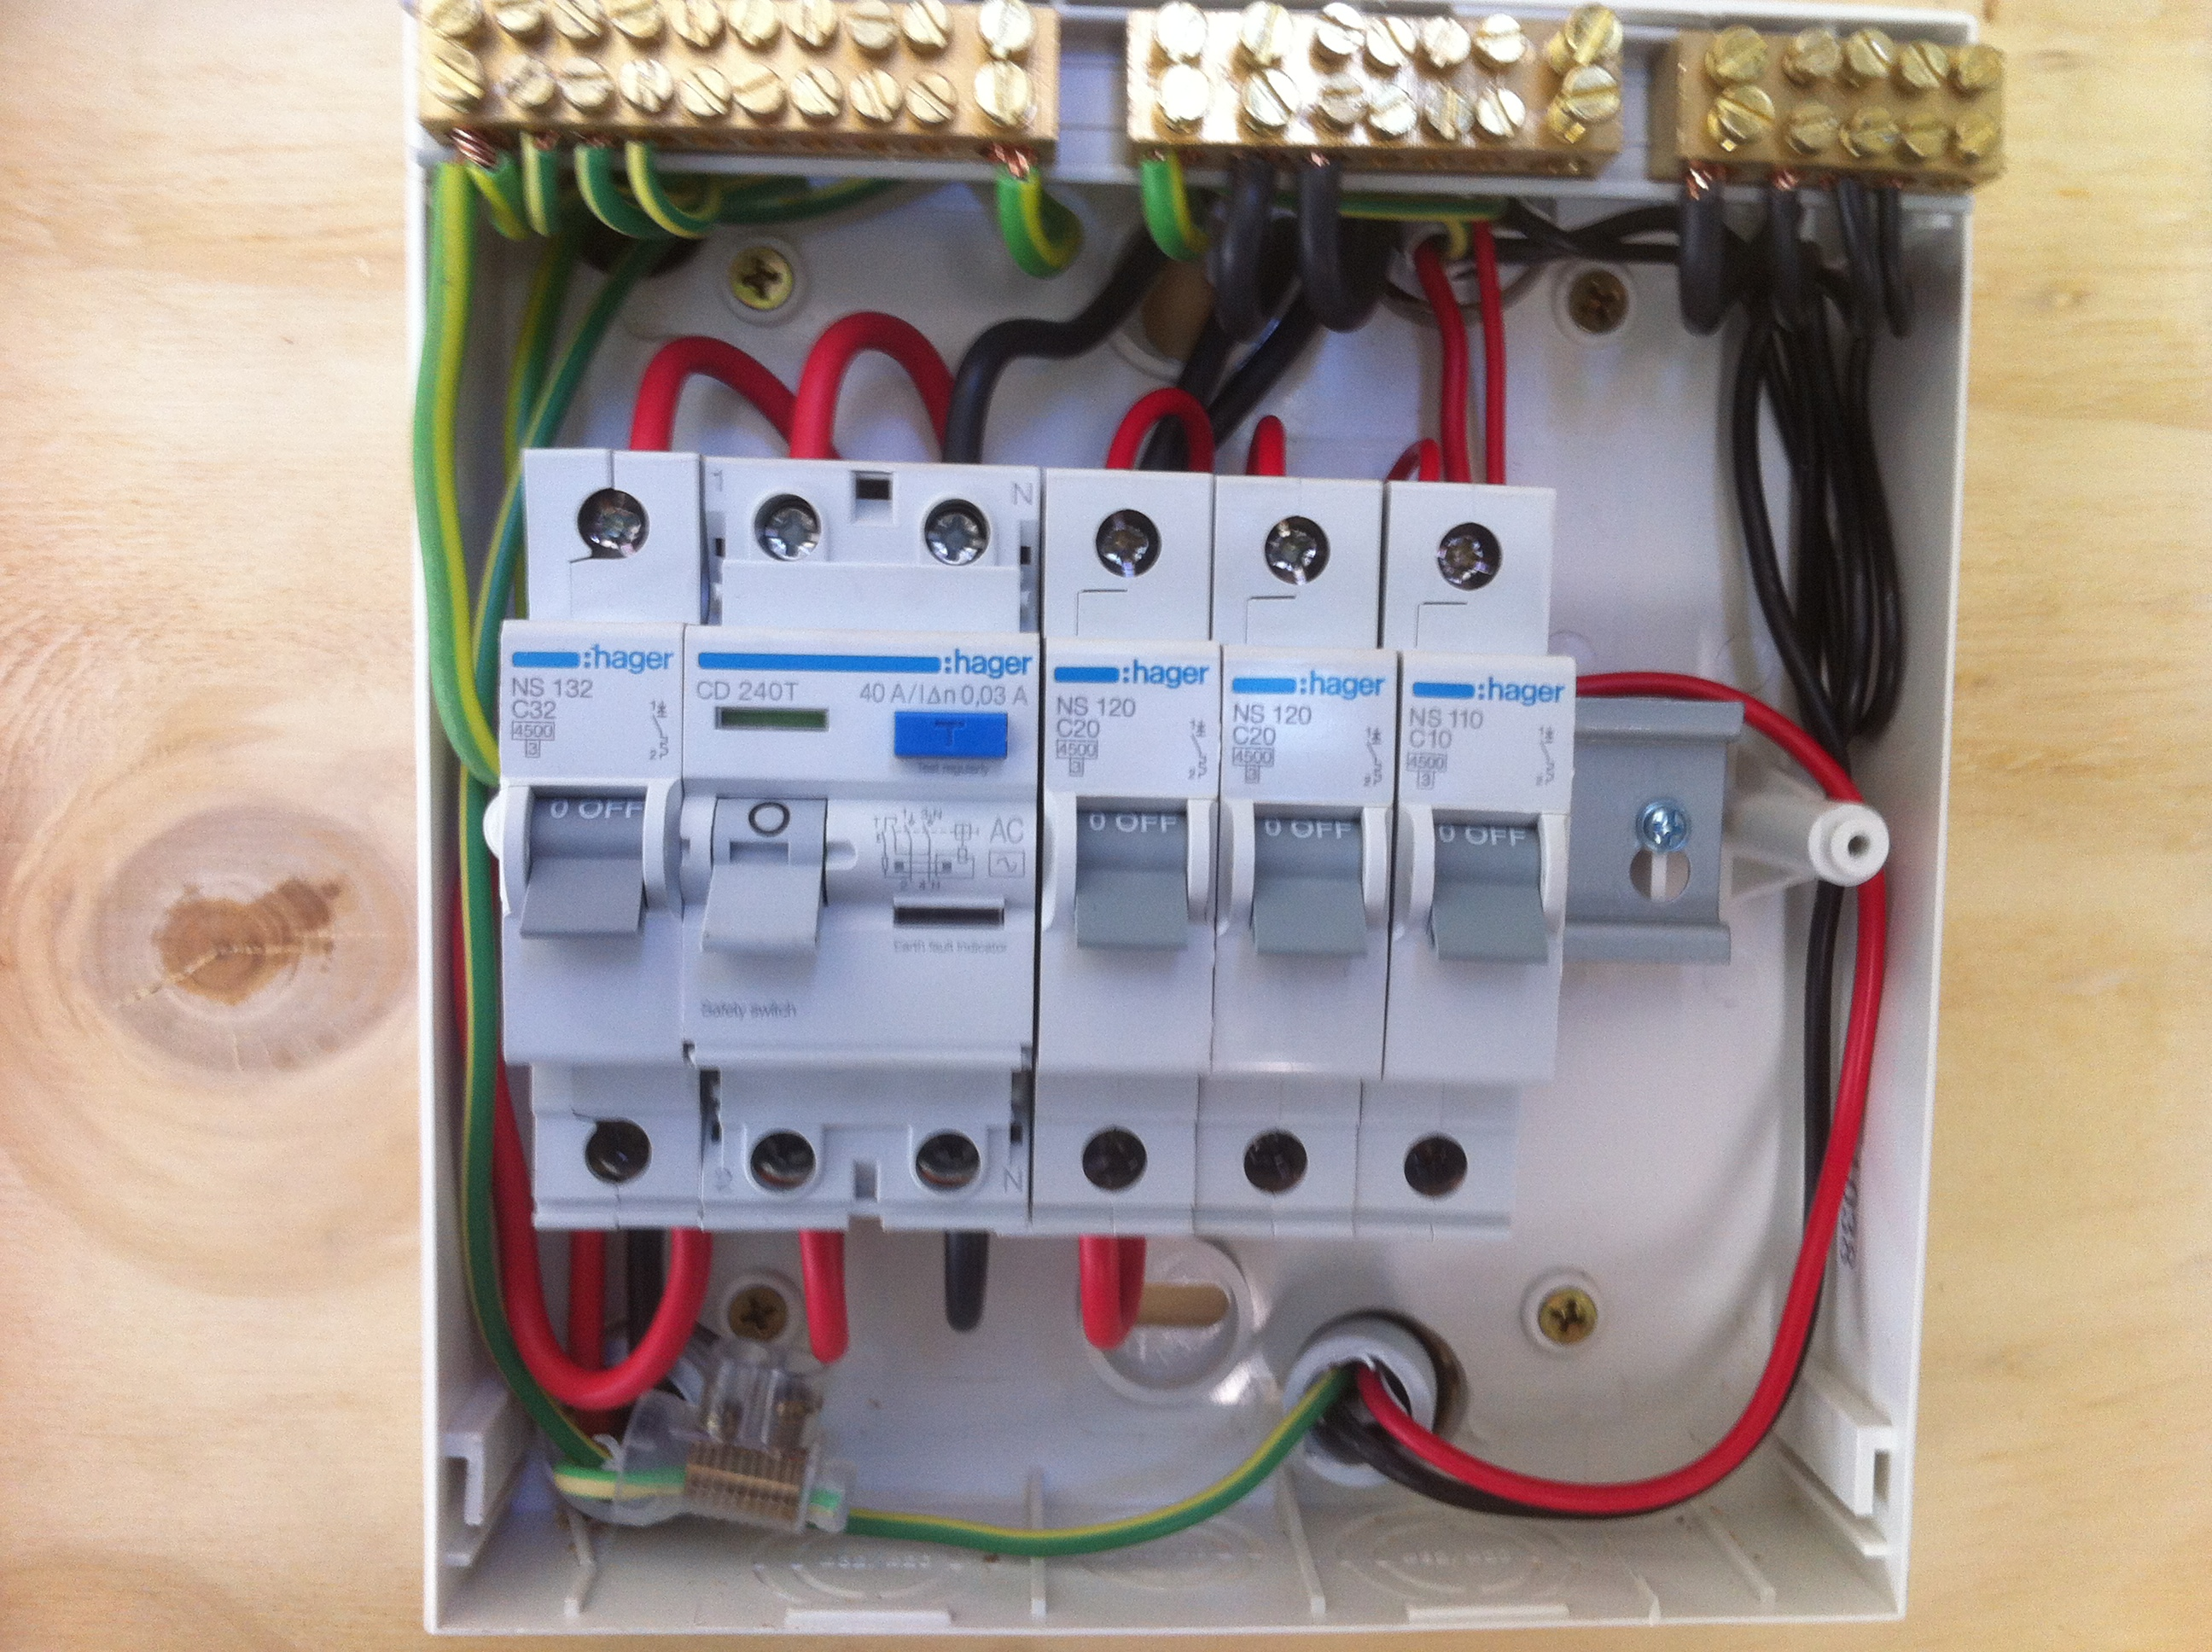 Lm 5189  Shed To House Wiring Diagram Schematic Wiring